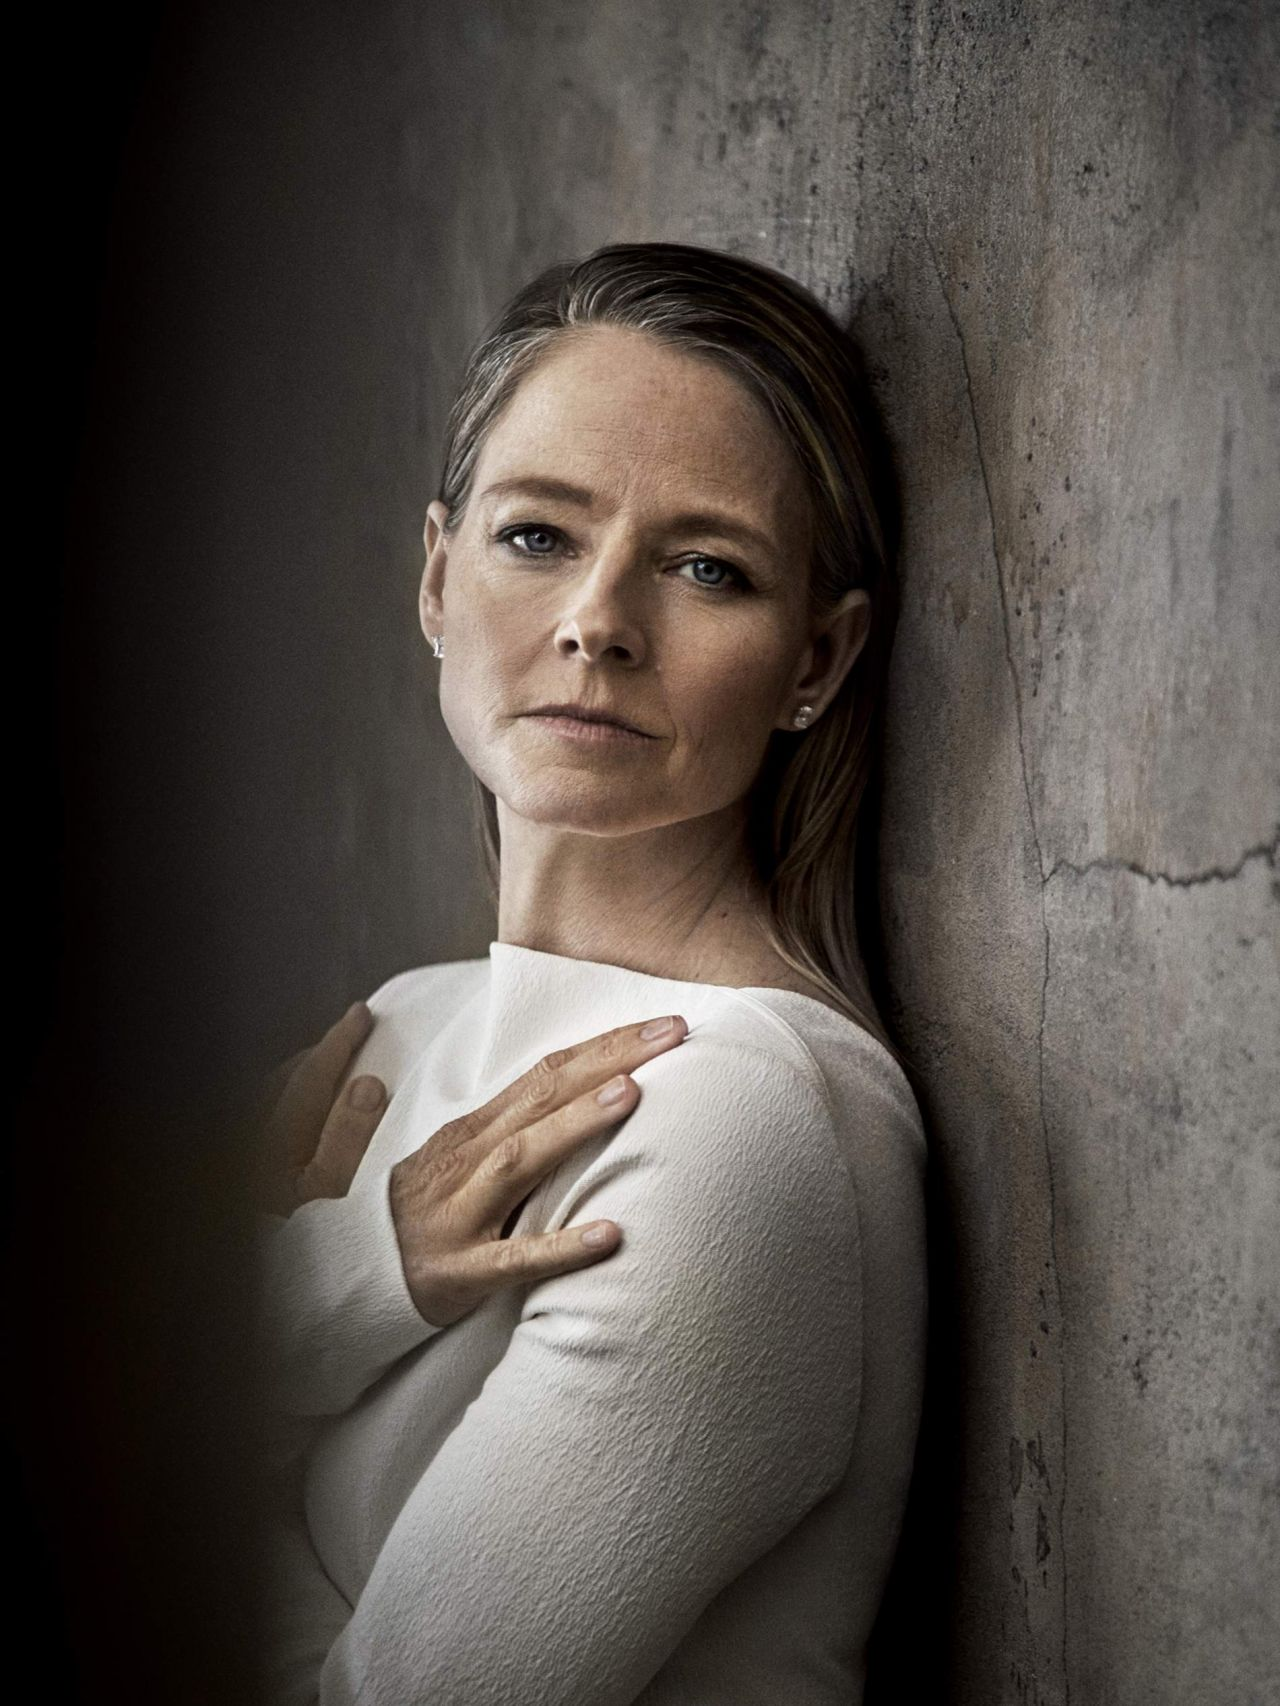 jodie foster - photo #48